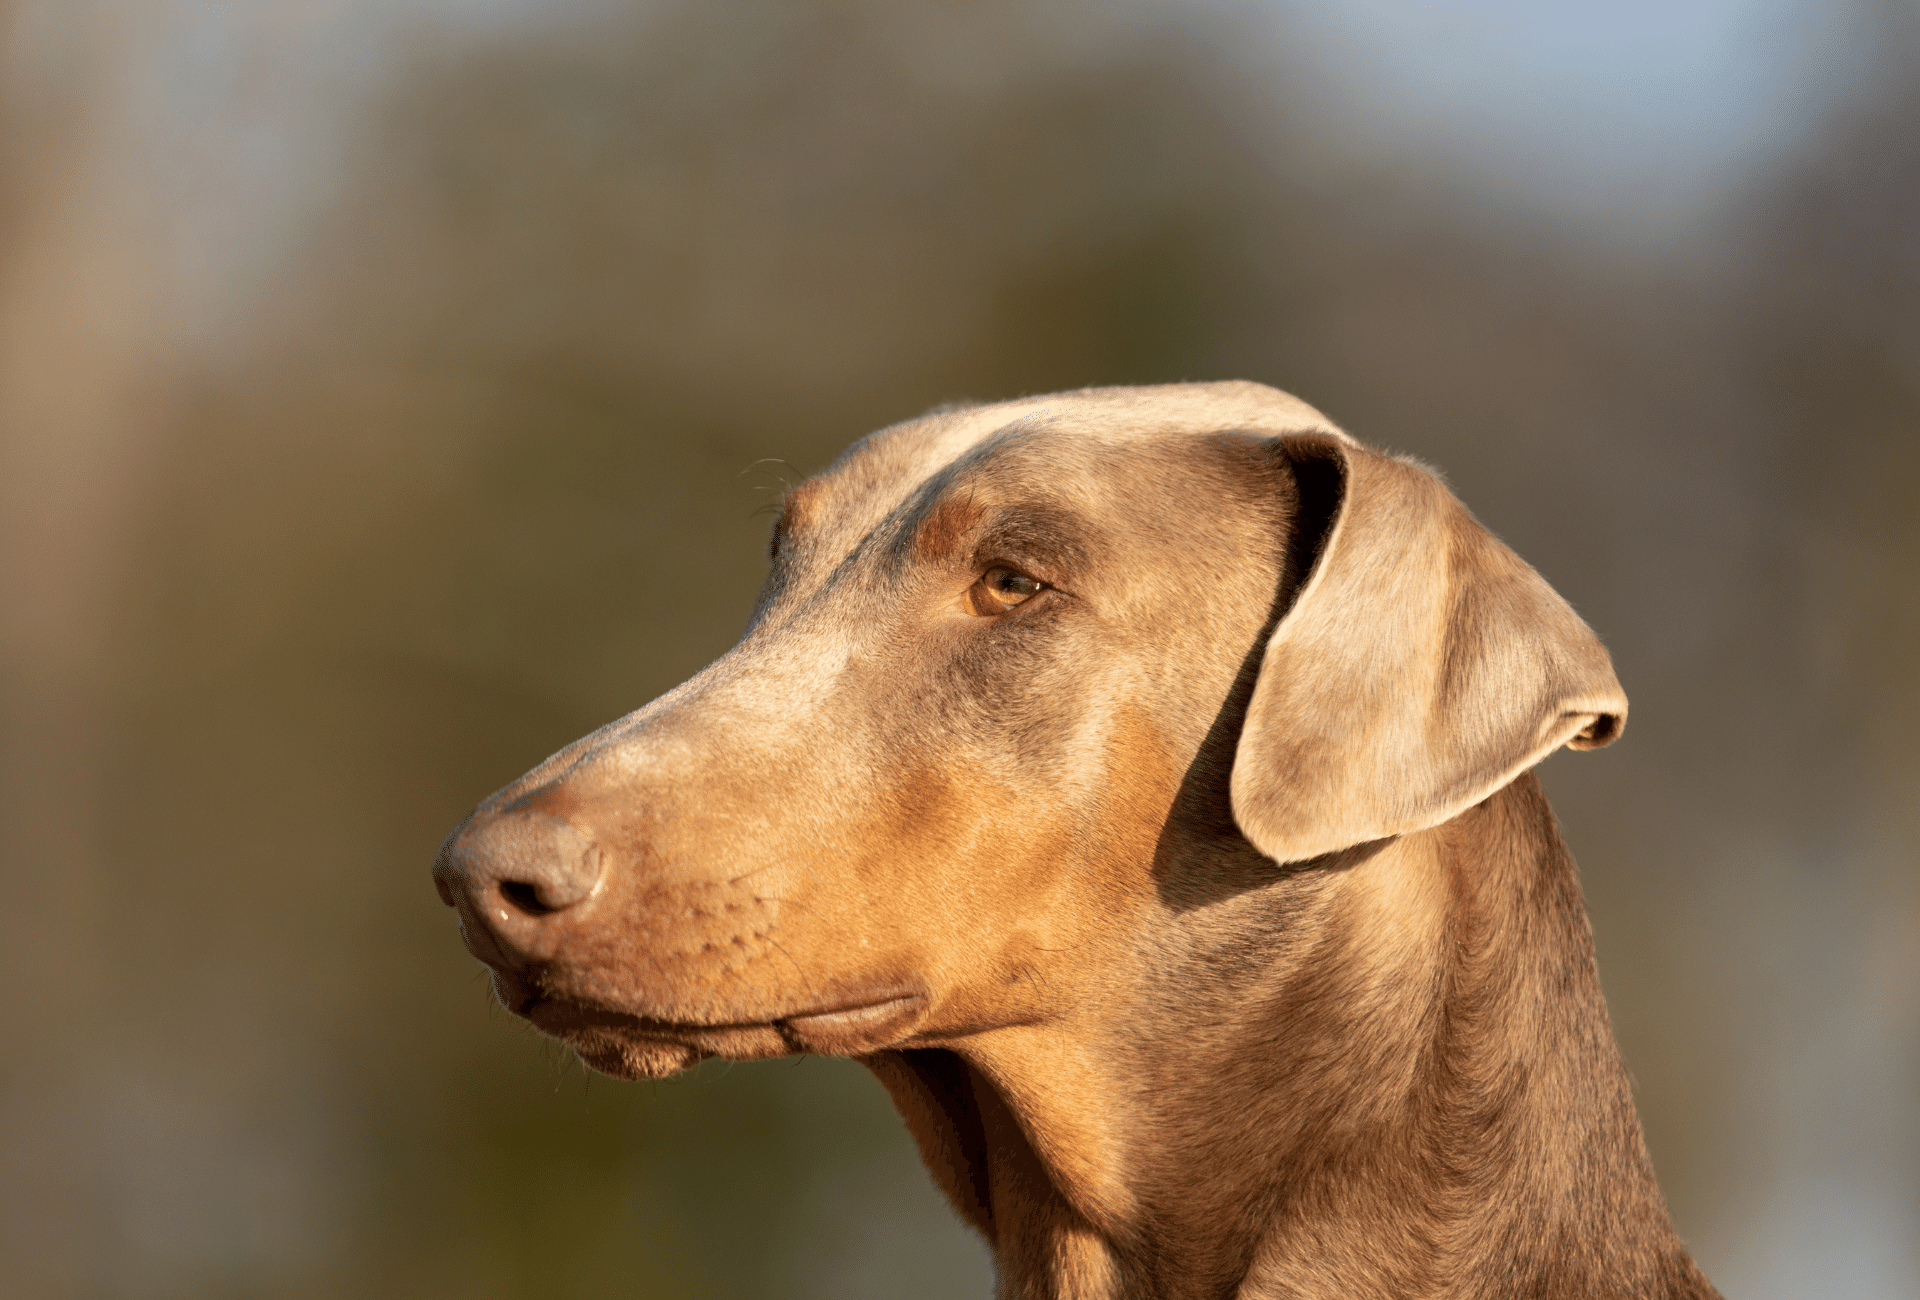 Close-up of a fawn or Isabella colored Doberman